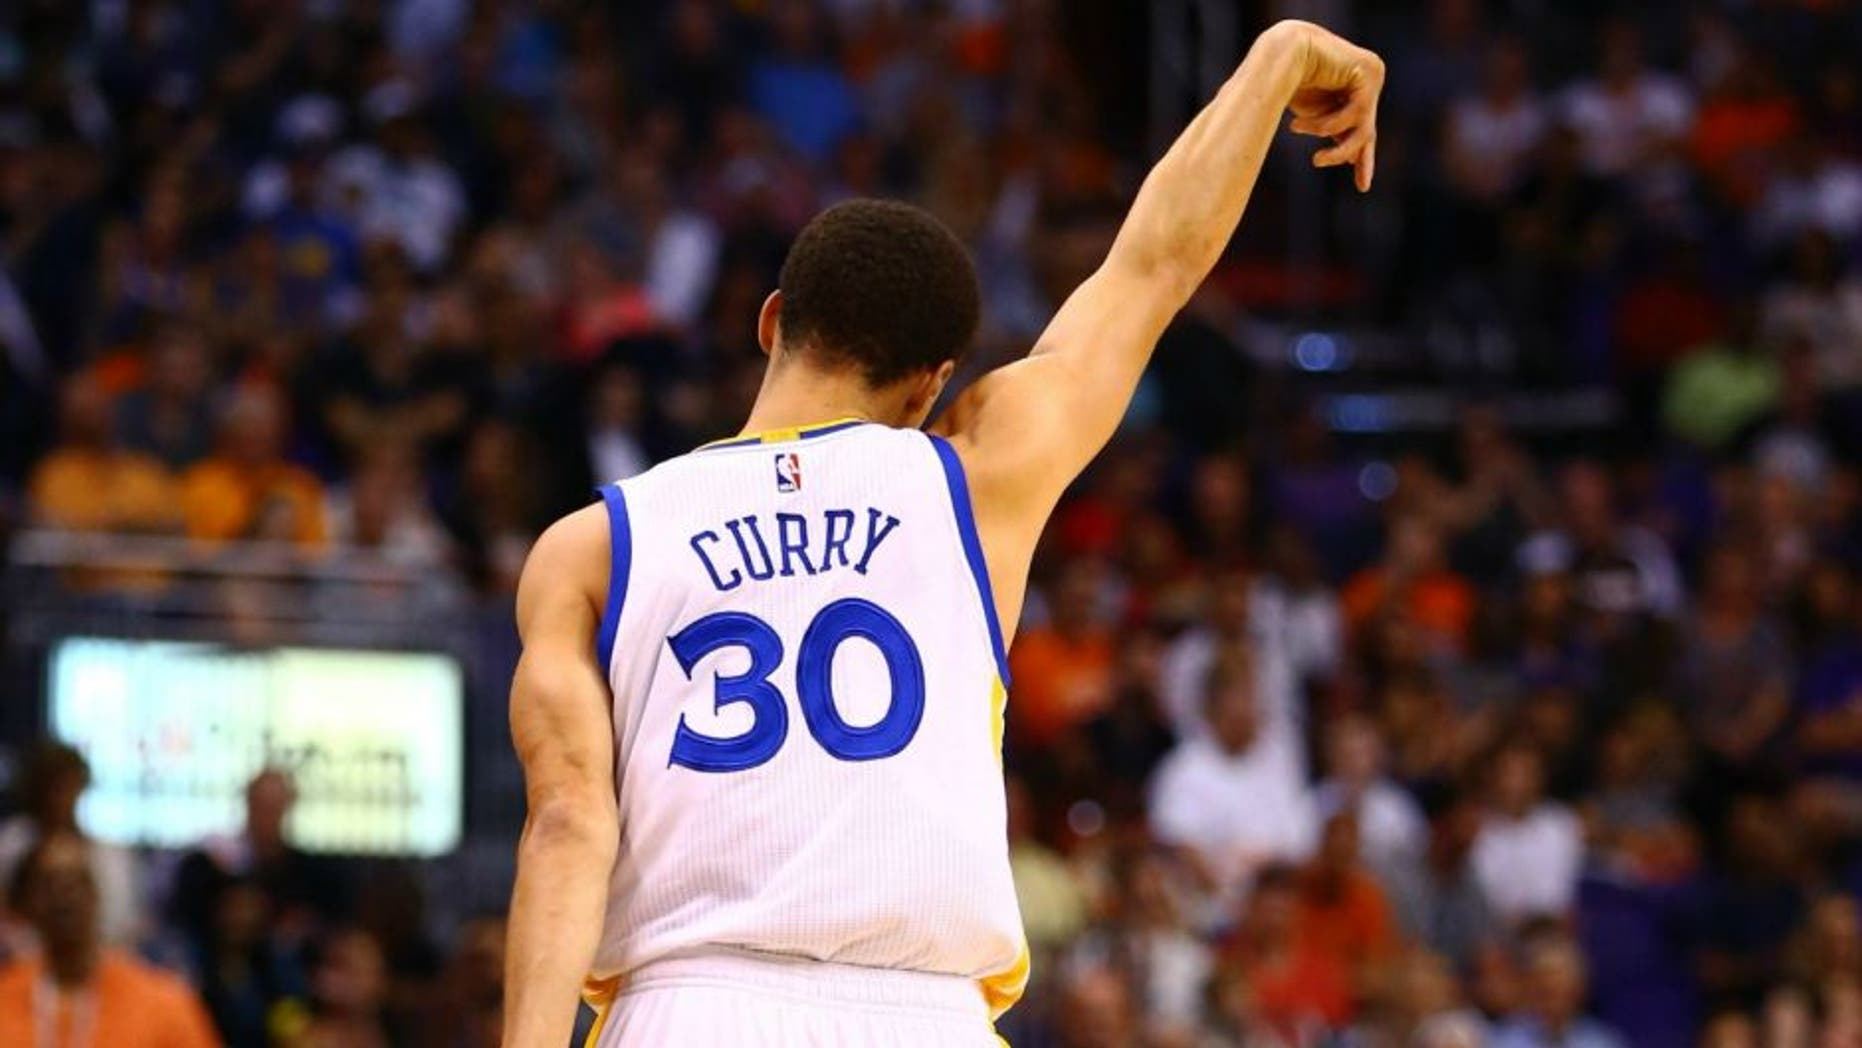 Mar 9, 2015; Phoenix, AZ, USA; Golden State Warriors guard Stephen Curry celebrates a three point shot against the Phoenix Suns in the first quarter at US Airways Center. Mandatory Credit: Mark J. Rebilas-USA TODAY Sports